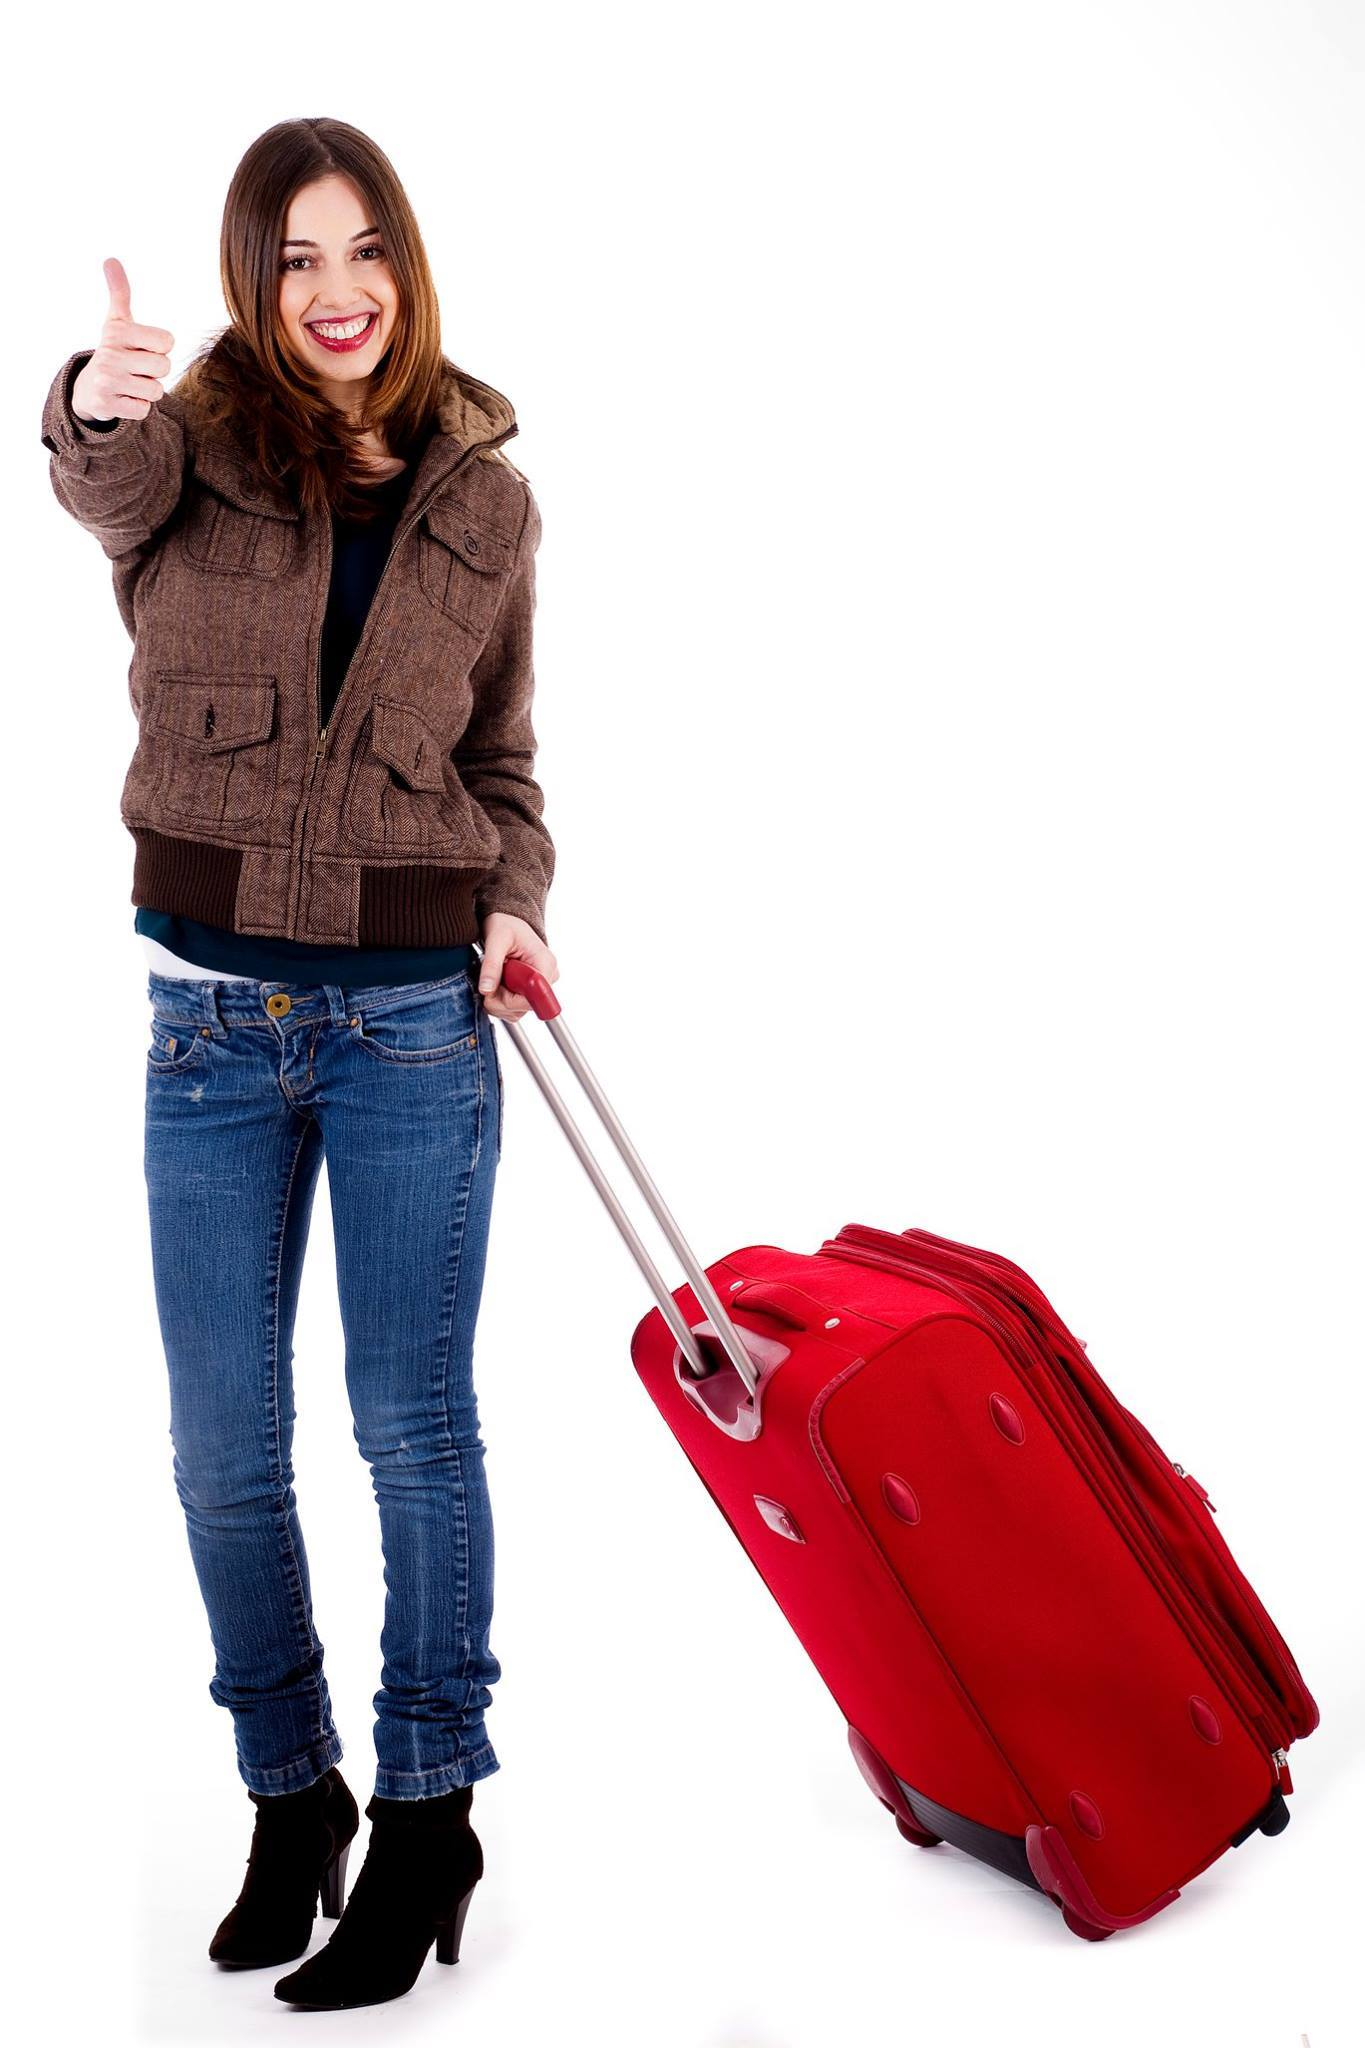 Women with thumbs up and travel bag ready.